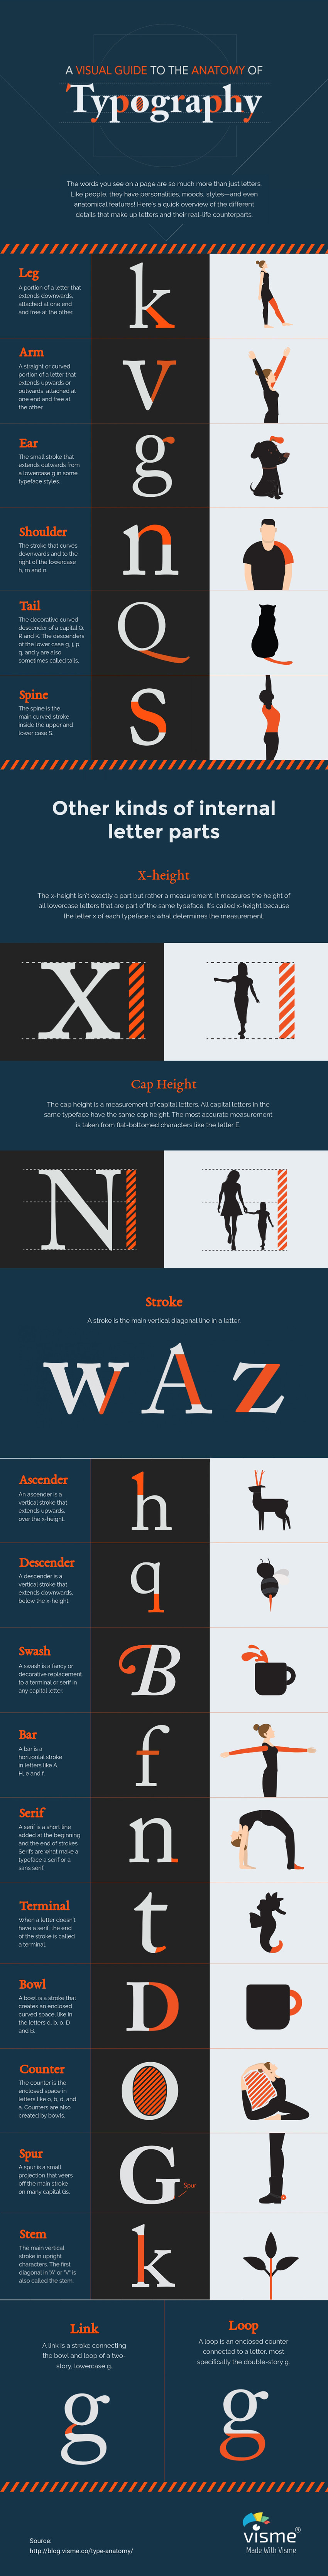 A Visual Guide to the Anatomy of Typography